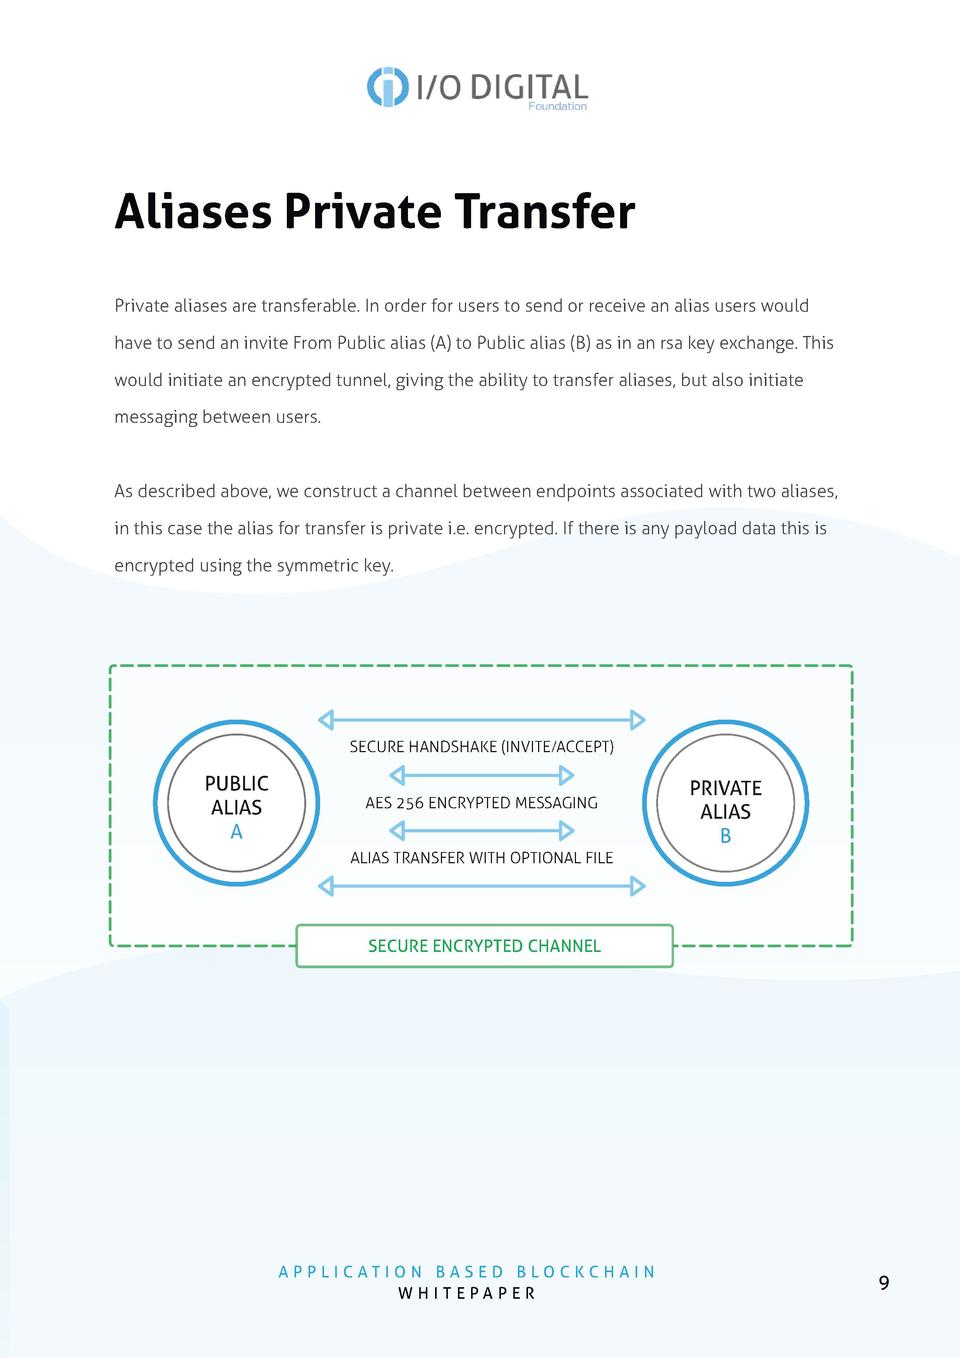 Aliases Private Transfer Private aliases are transferable. In order for users to send or receive an alias users would have...